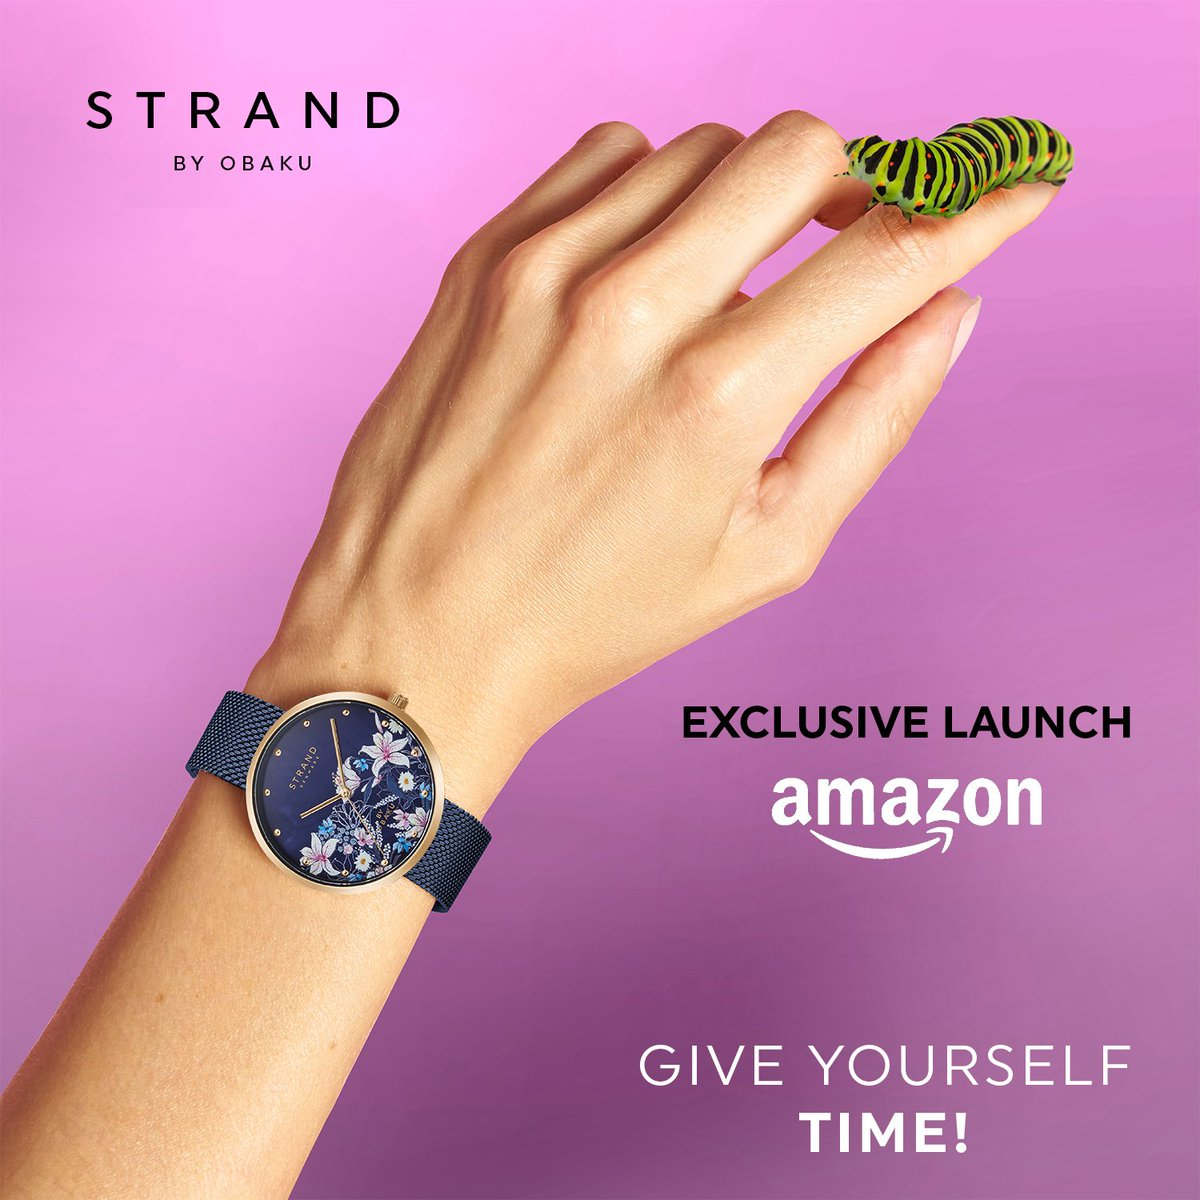 Dress your wrists in the minimal & subtle style that Danish design is so famous for with watches from #StrandByObaku! Hurry & shop now to enjoy ₹500 off on their timepieces:   #Obaku #Watches #DanishDesign #Fashion #Style #AmazonFashion #HarPalFashionable